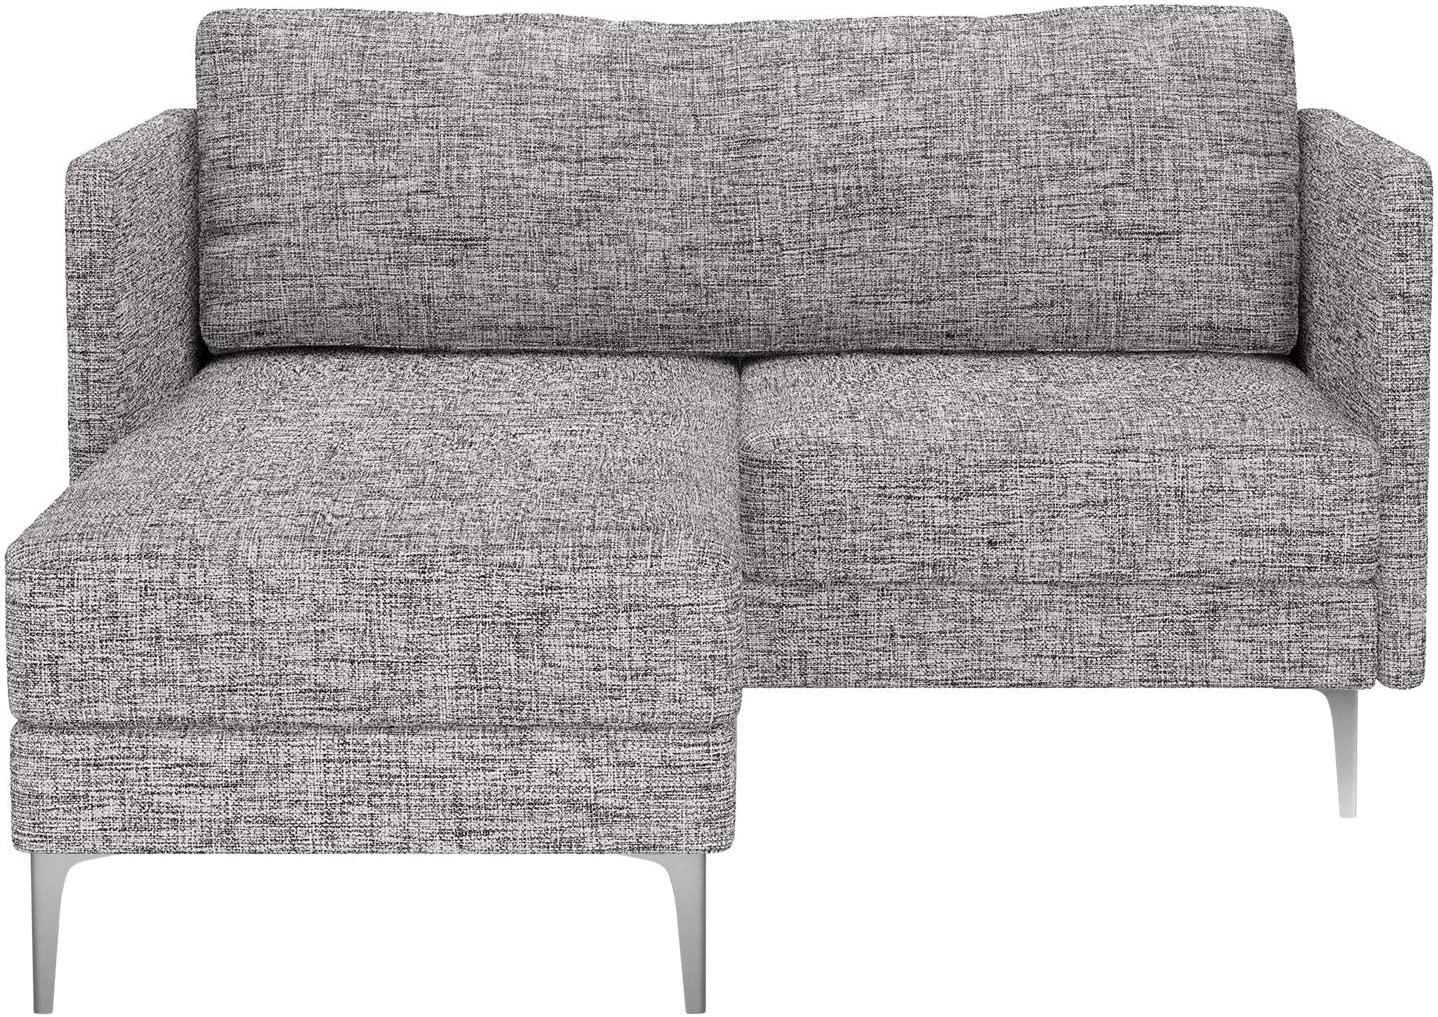 Poppy Loveseat Sectional Sales of SALE items from Max 82% OFF new works - Lovese Sofa Nelson